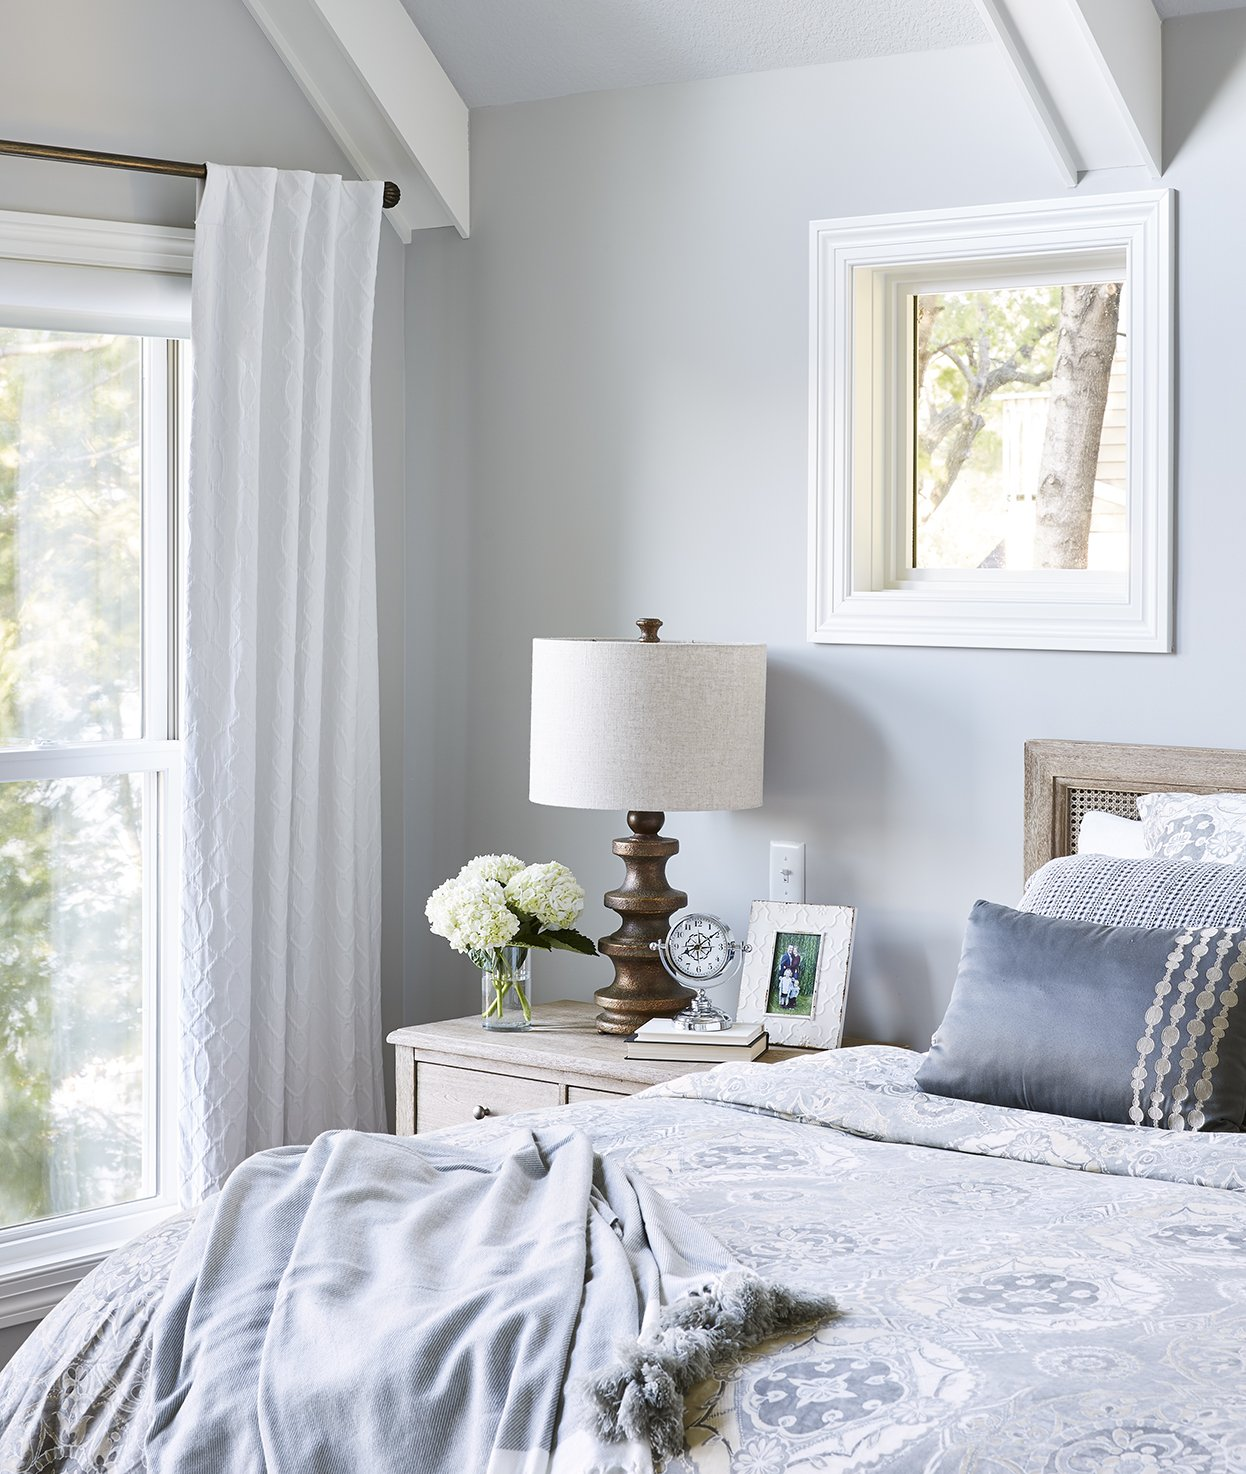 Spacious distressed wood nightstands give ample room for books, a favorite photo frame, a lamp, and fresh-cut flowers. This vignette is the perfect corner addition!